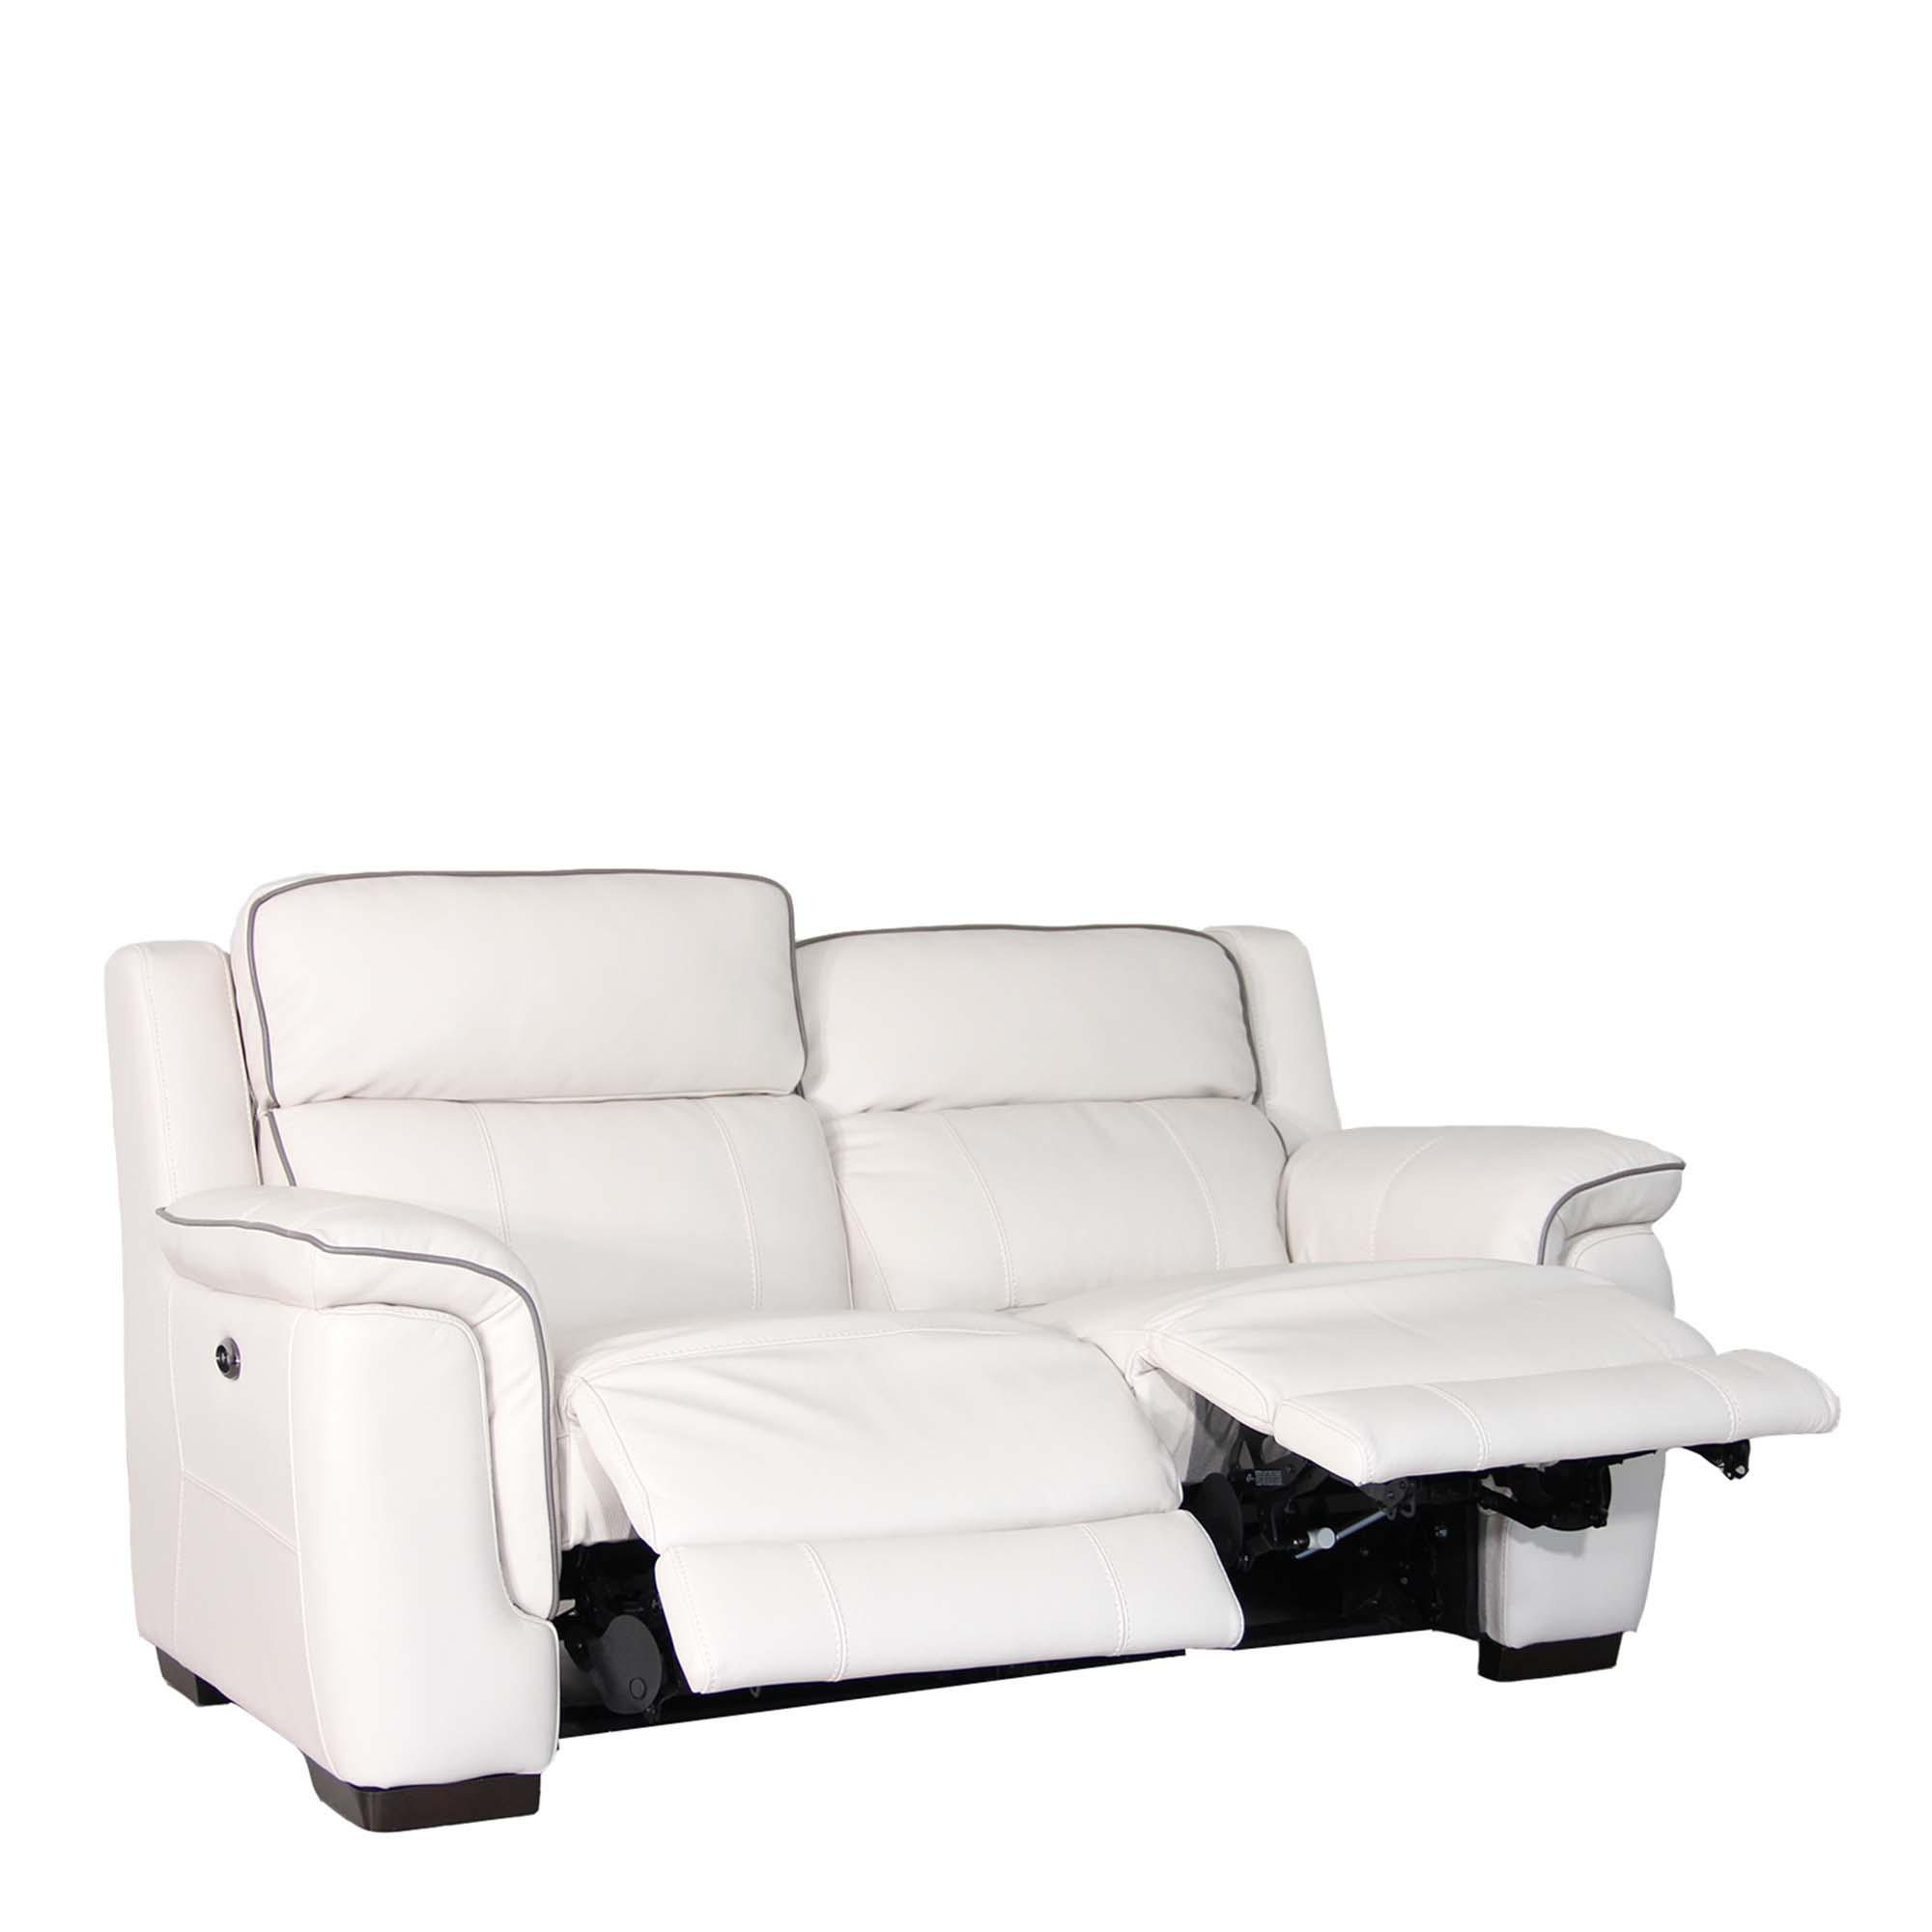 Double Recliner Chair Monza Leather 2 5 Seat Compact Sofa With Double Power Recliner